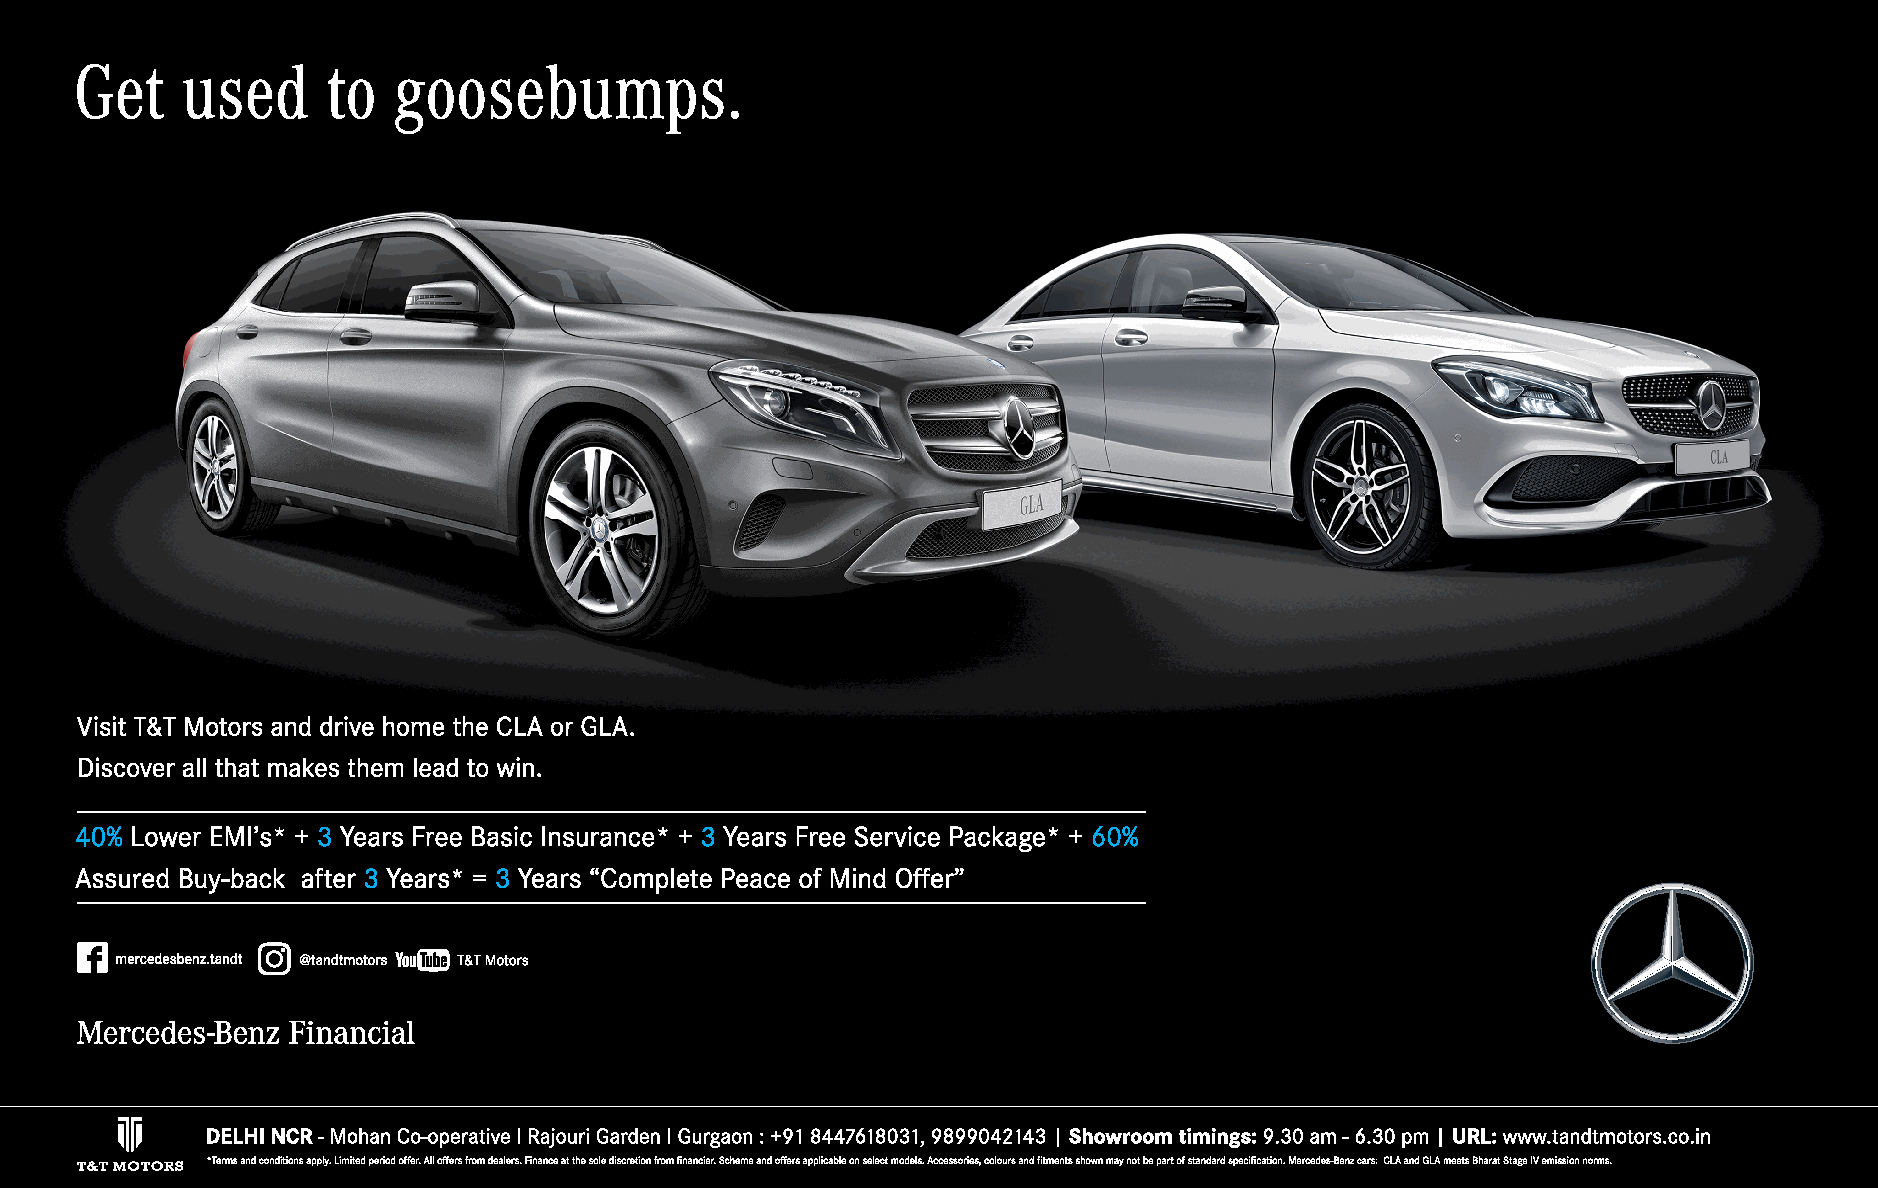 Mercedes Benz Get Used To Goosebumps Ad Dainik Jagran Delhi Check Out More Car Advertisement Collection At Https Www Adve Mercedes Benz Benz Car Advertising